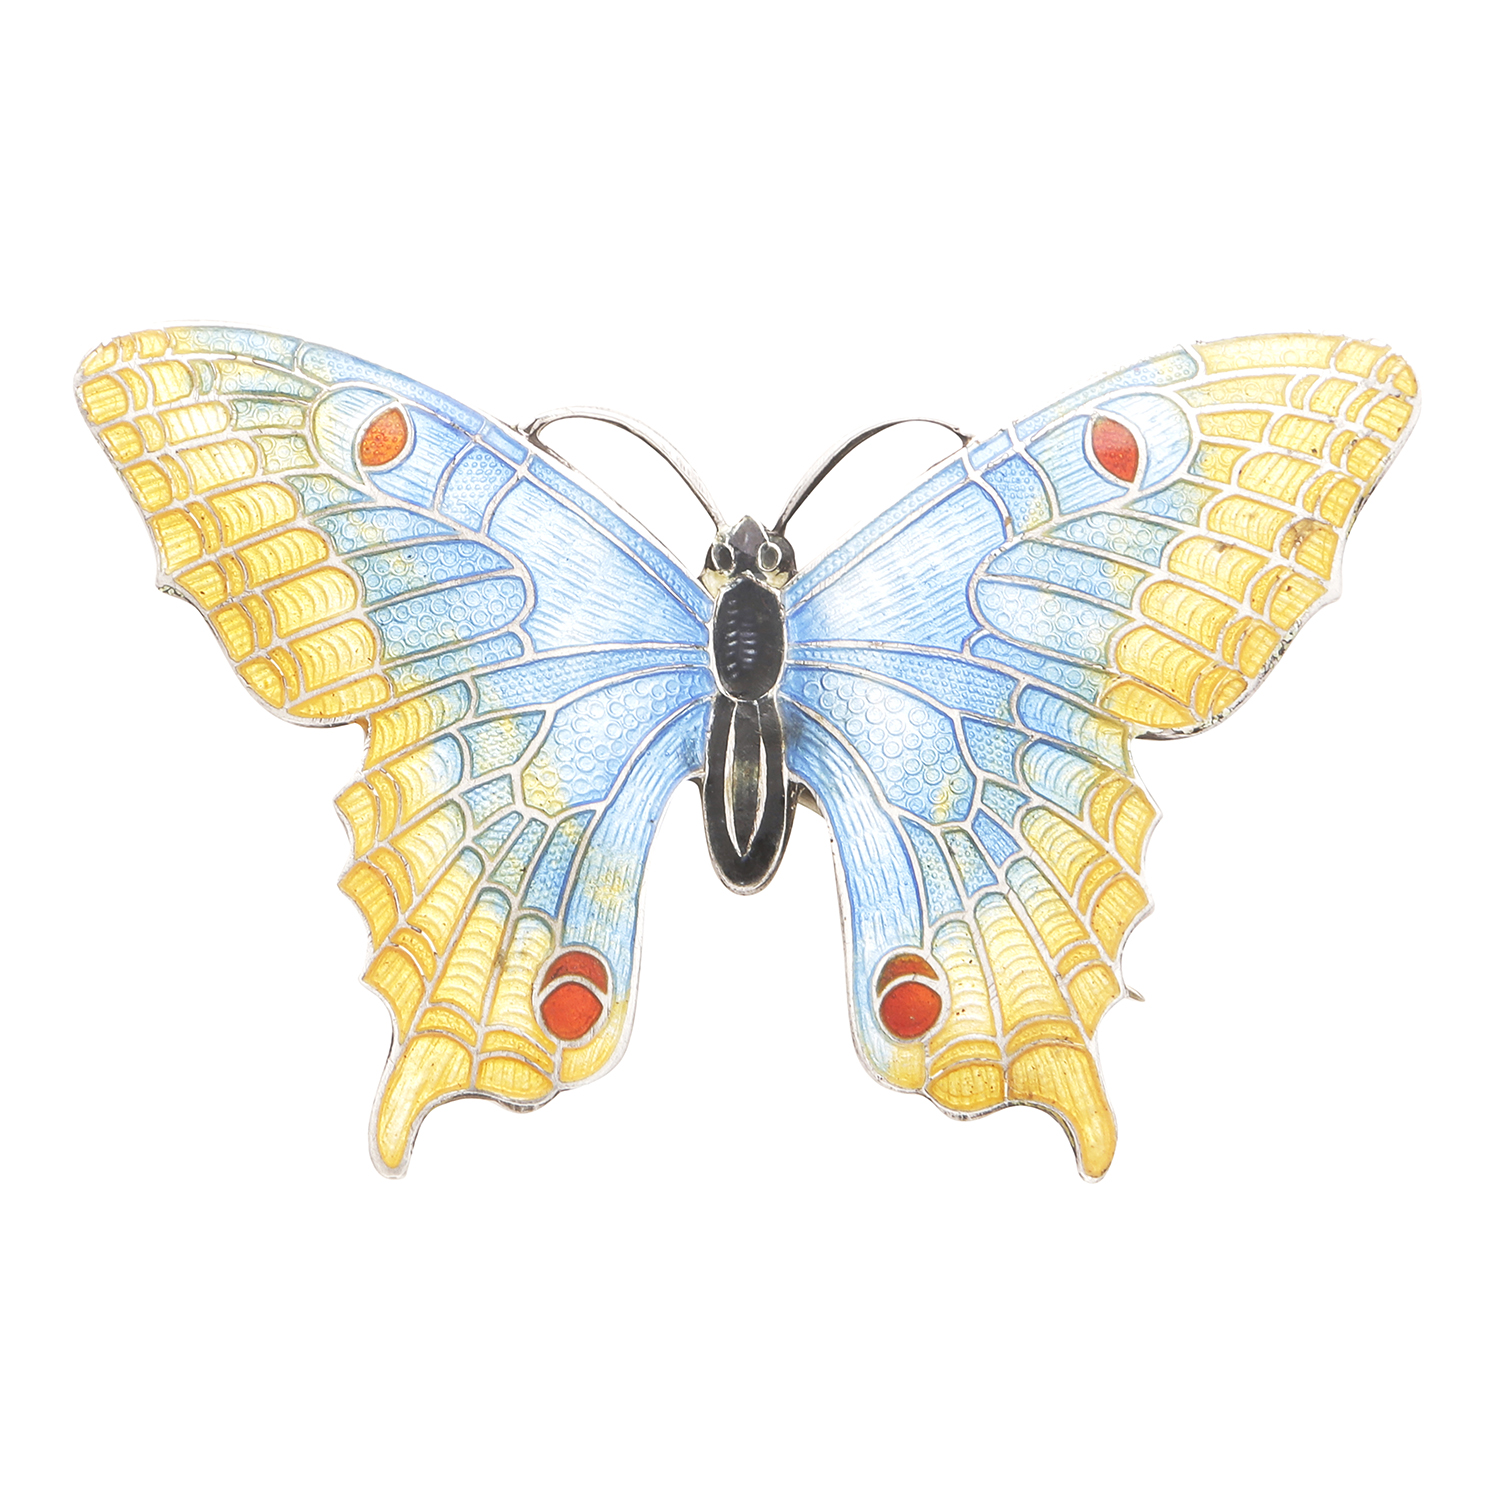 Los 13 - AN ANTIQUE ENAMELLED BUTTERFLY BROOCH, EARLY 20TH CENTURY in silver, designed as a butterfly, its